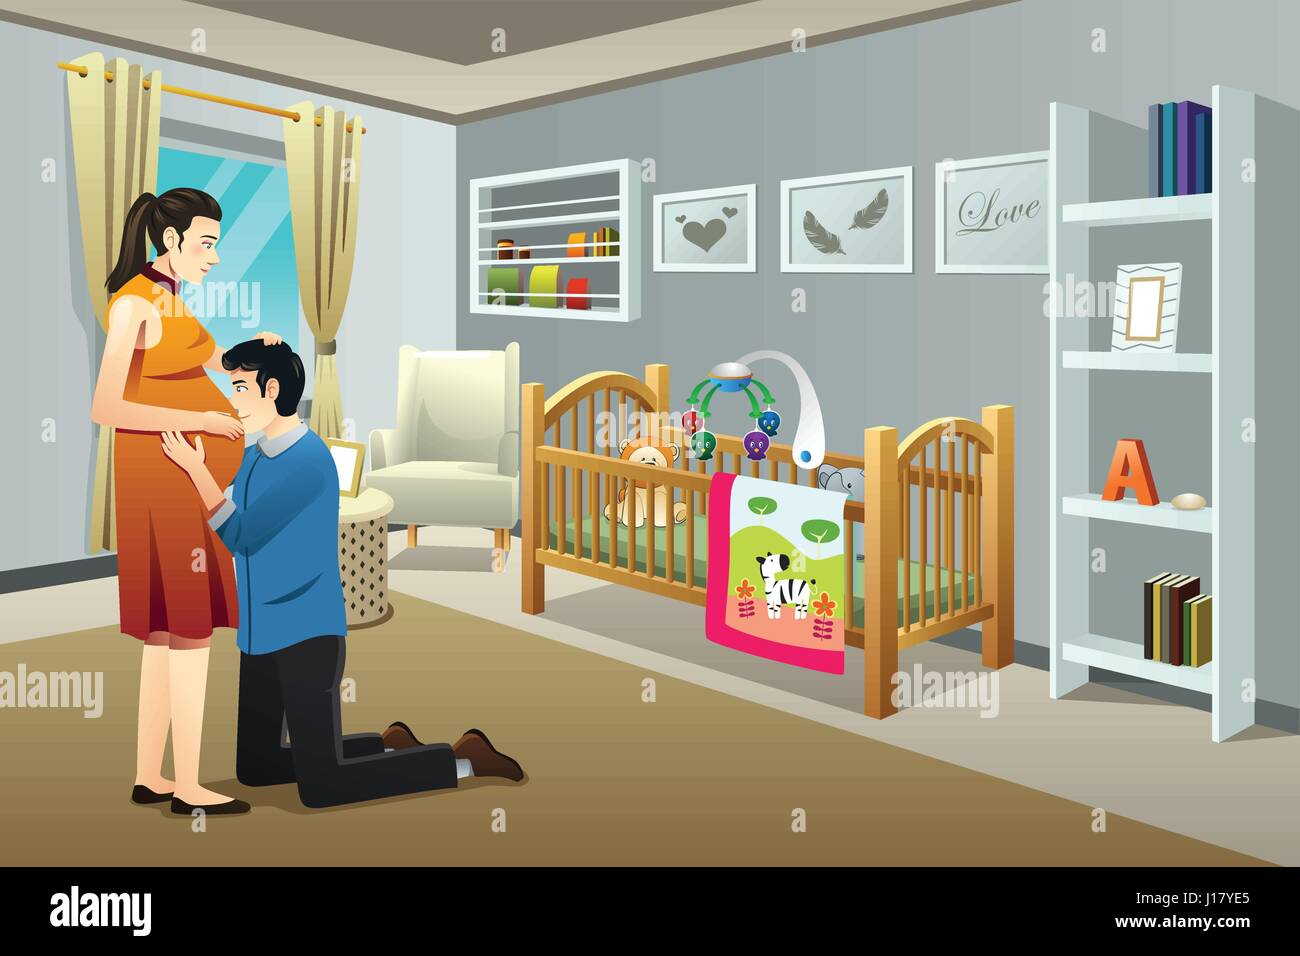 A vector illustration of a Pregnant Woman with Her Husband in the Nursery Room - Stock Vector